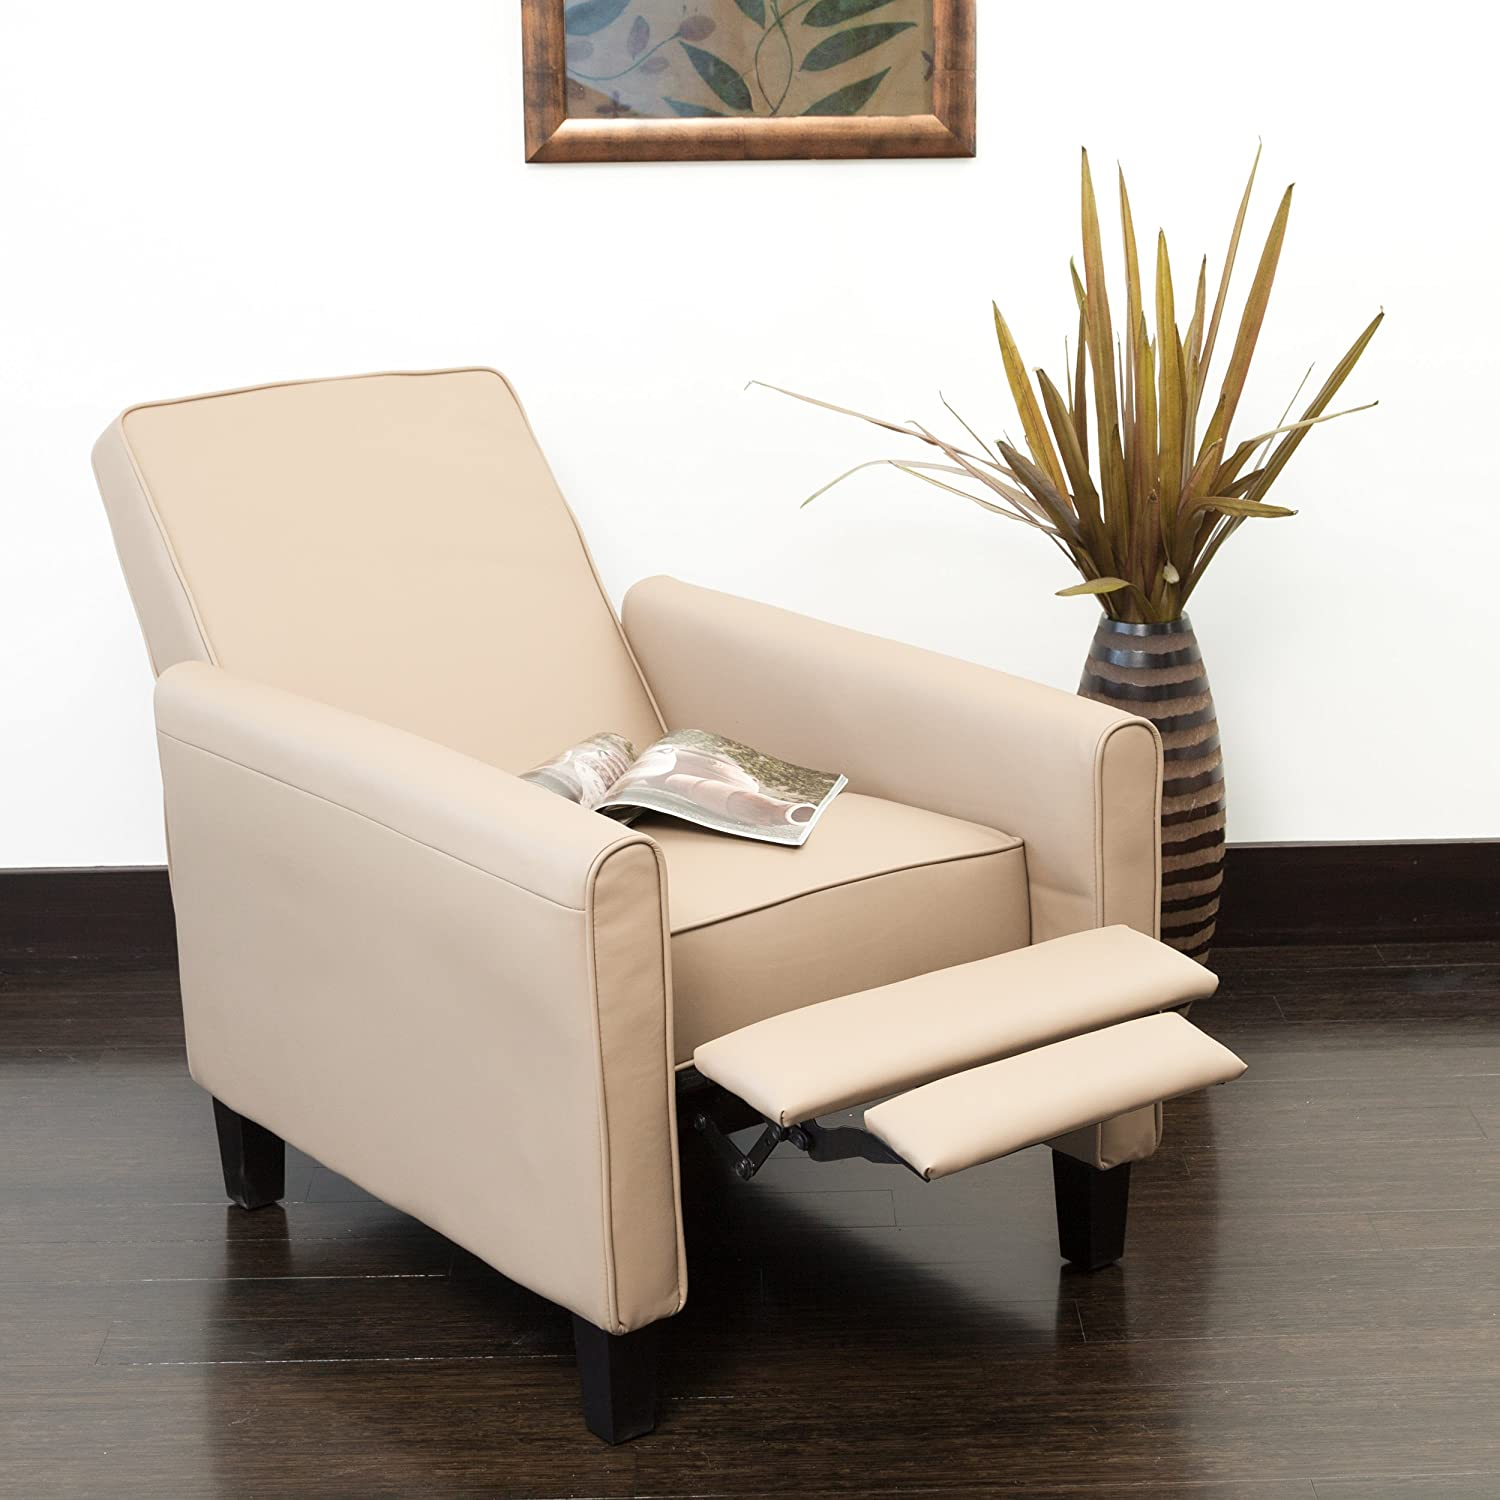 Club chair recliner - Club Chair Recliner